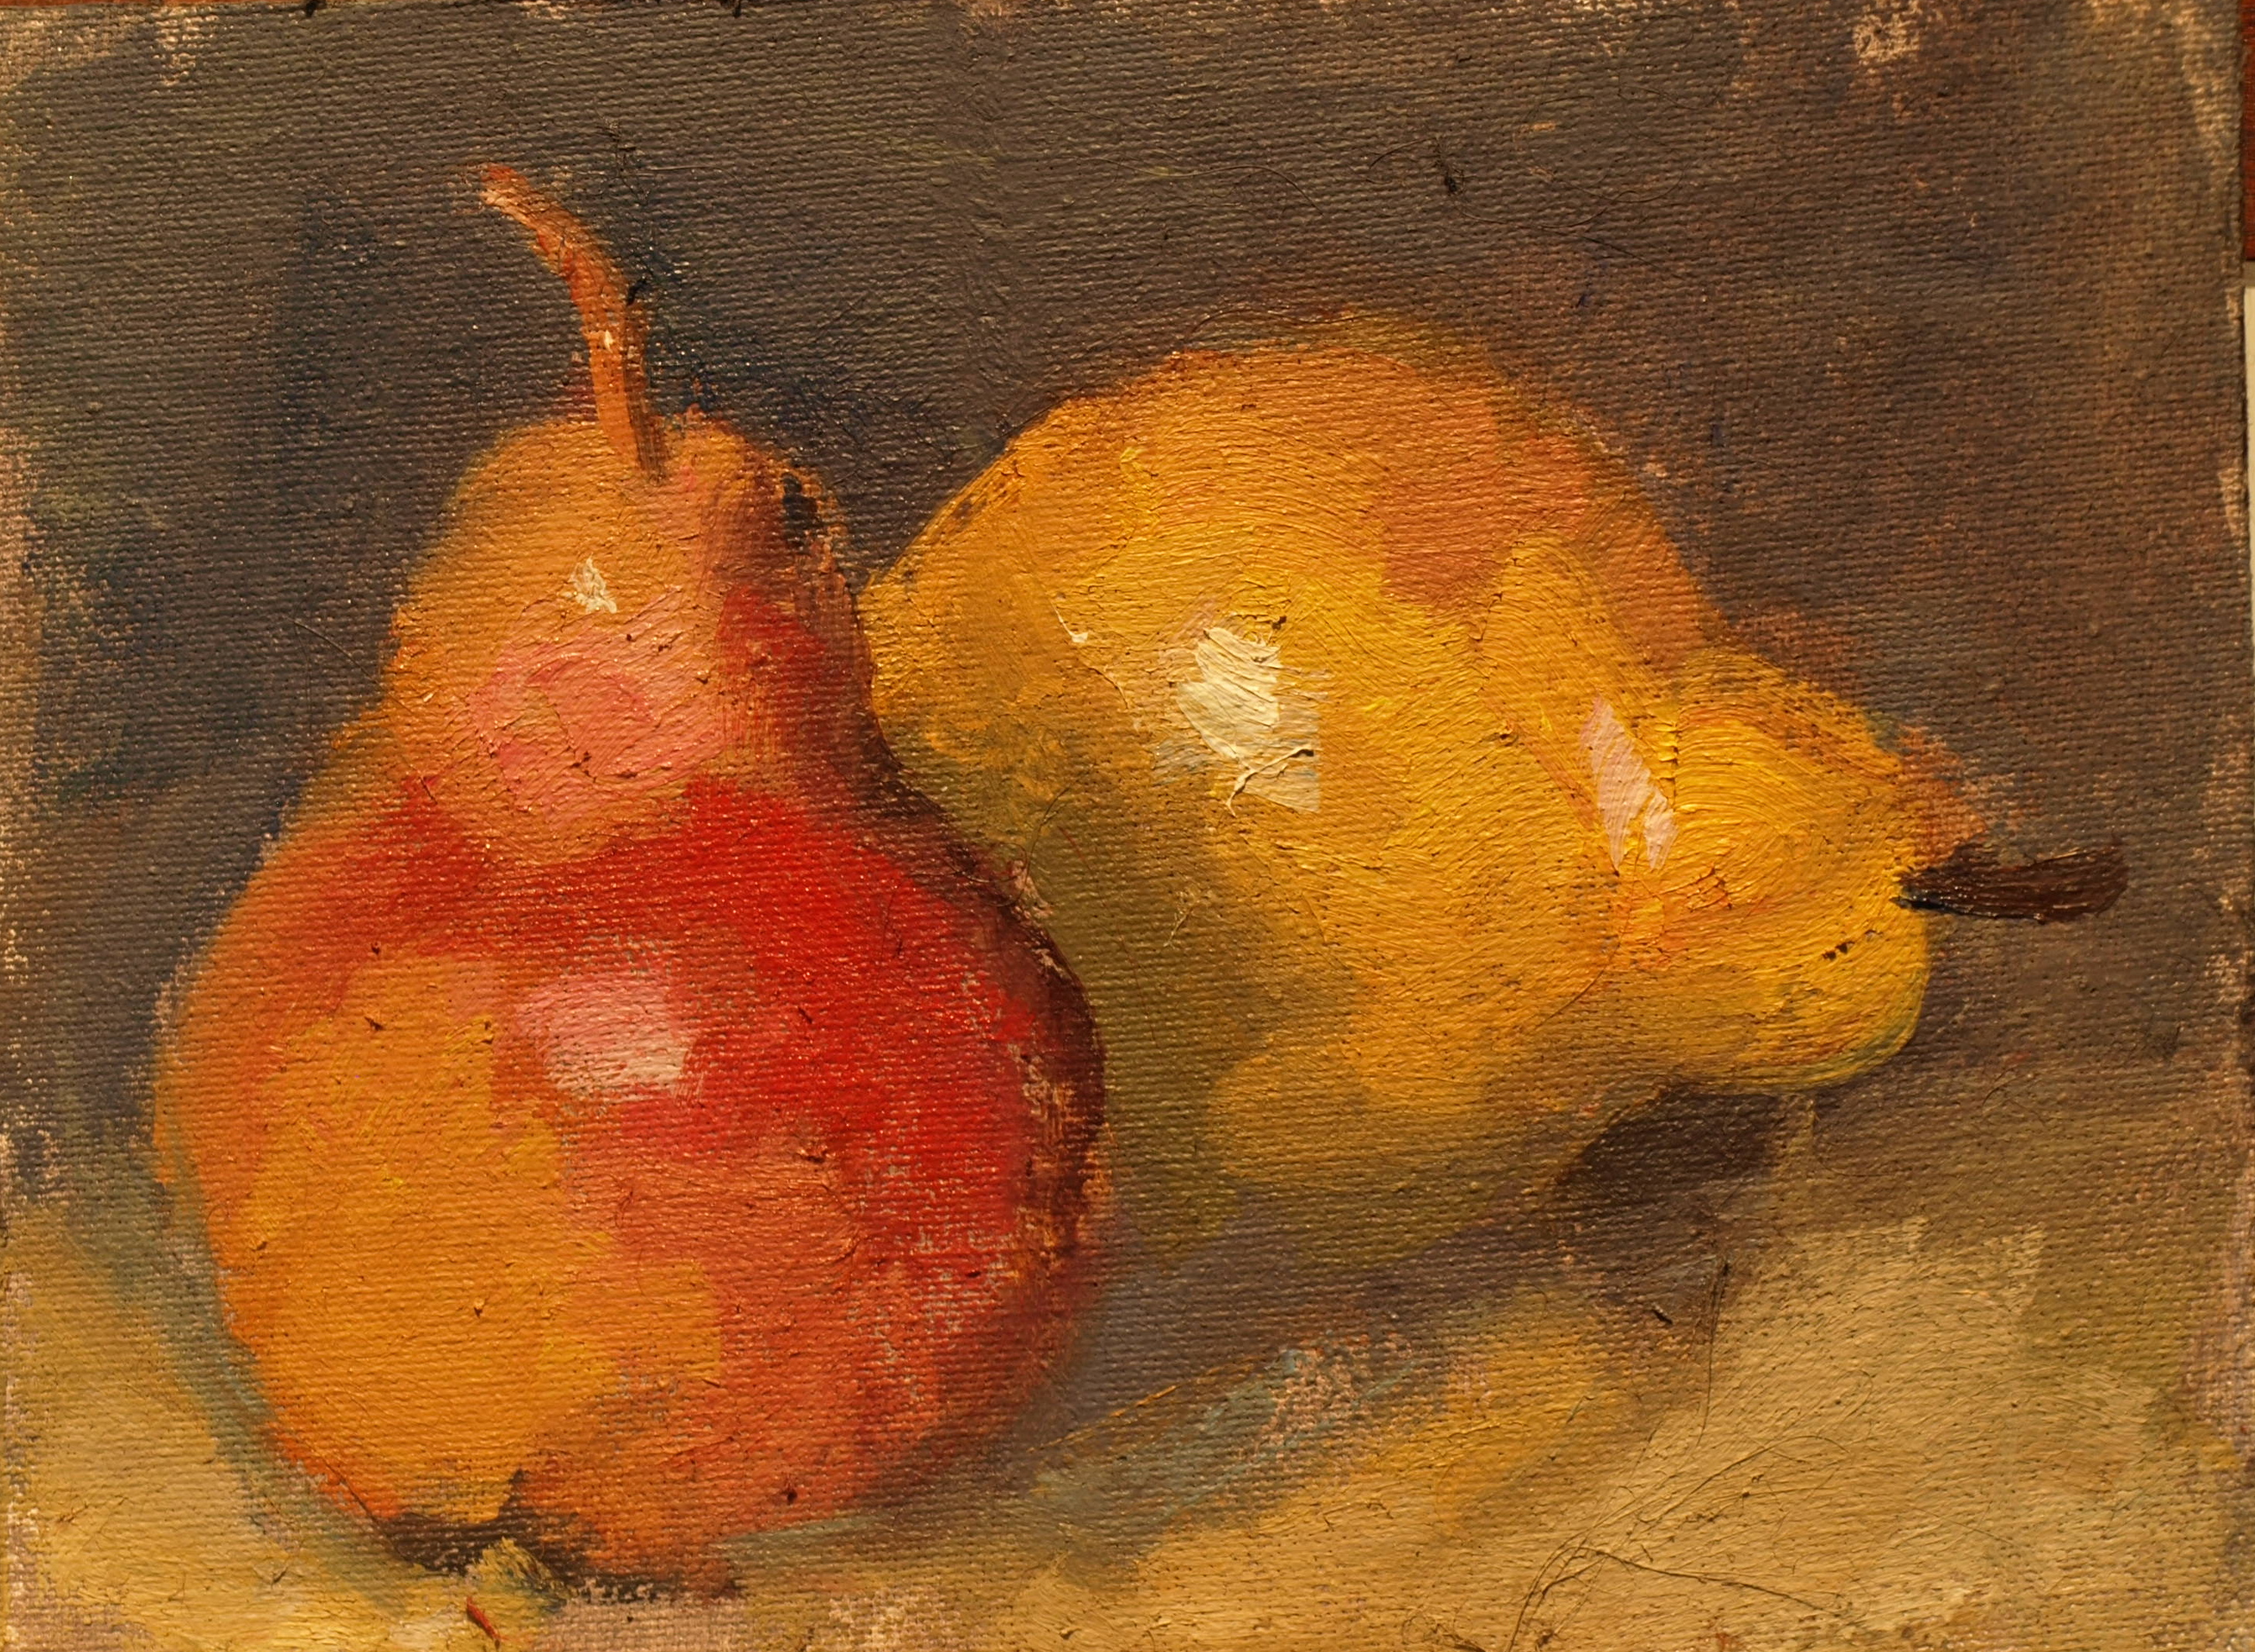 Two Pears, Oil on Canvas on Panel, 6 x 8 Inches, by Susan Grisell, $125